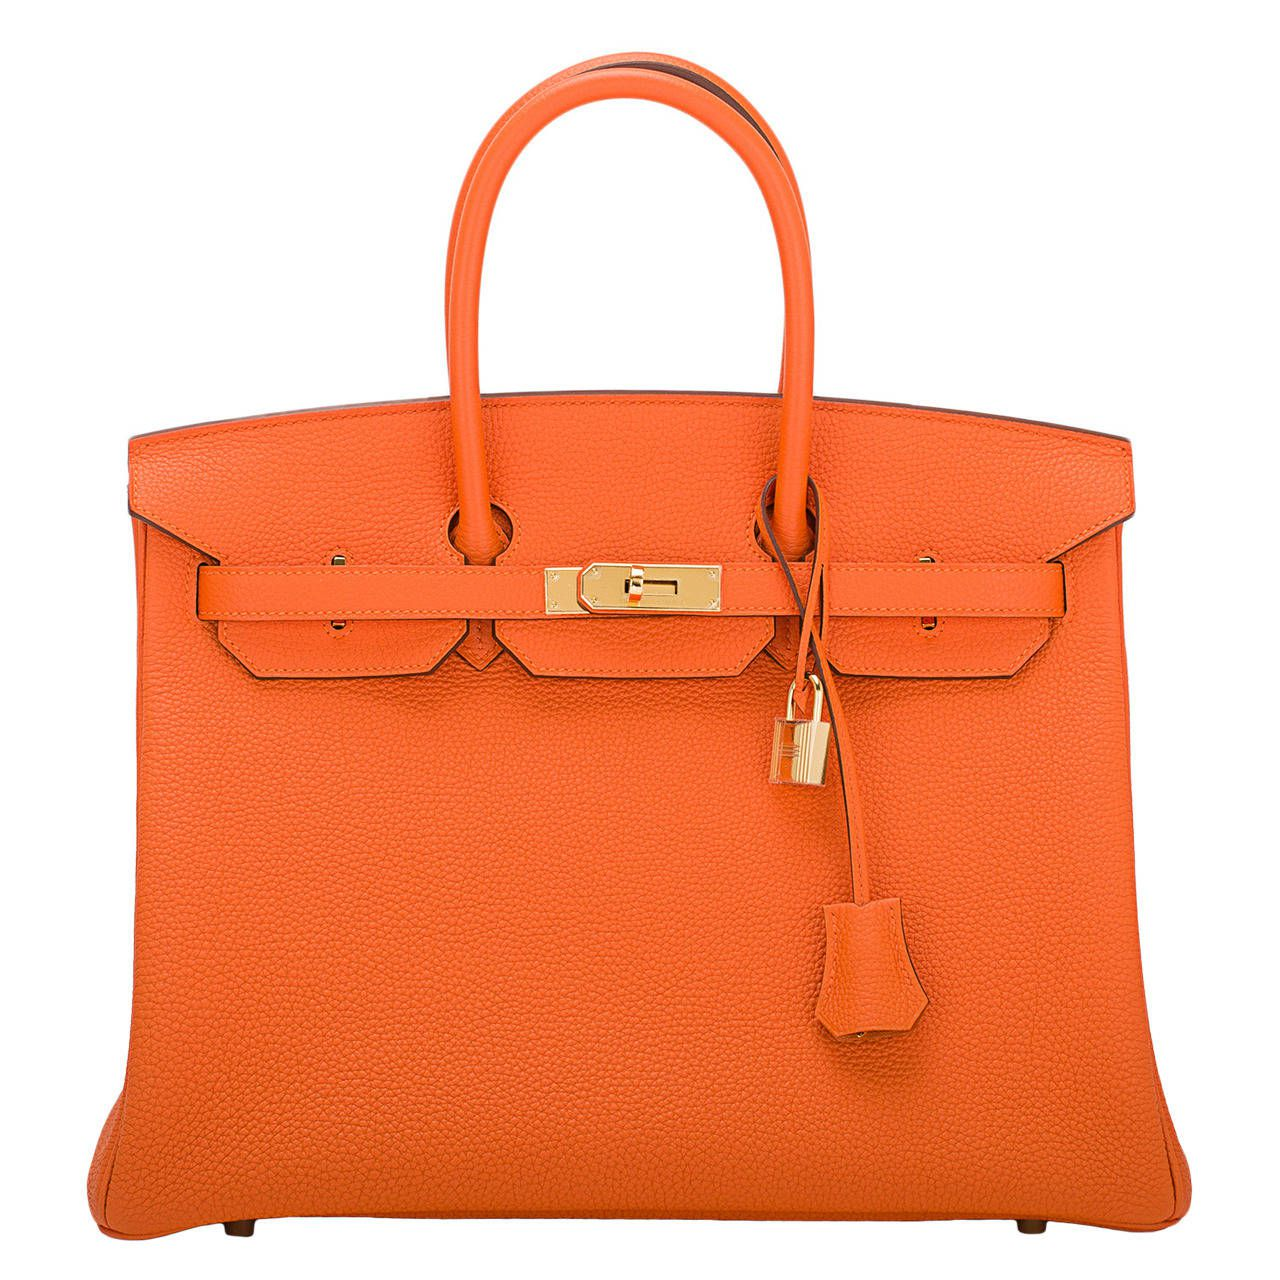 hermes handbags prices